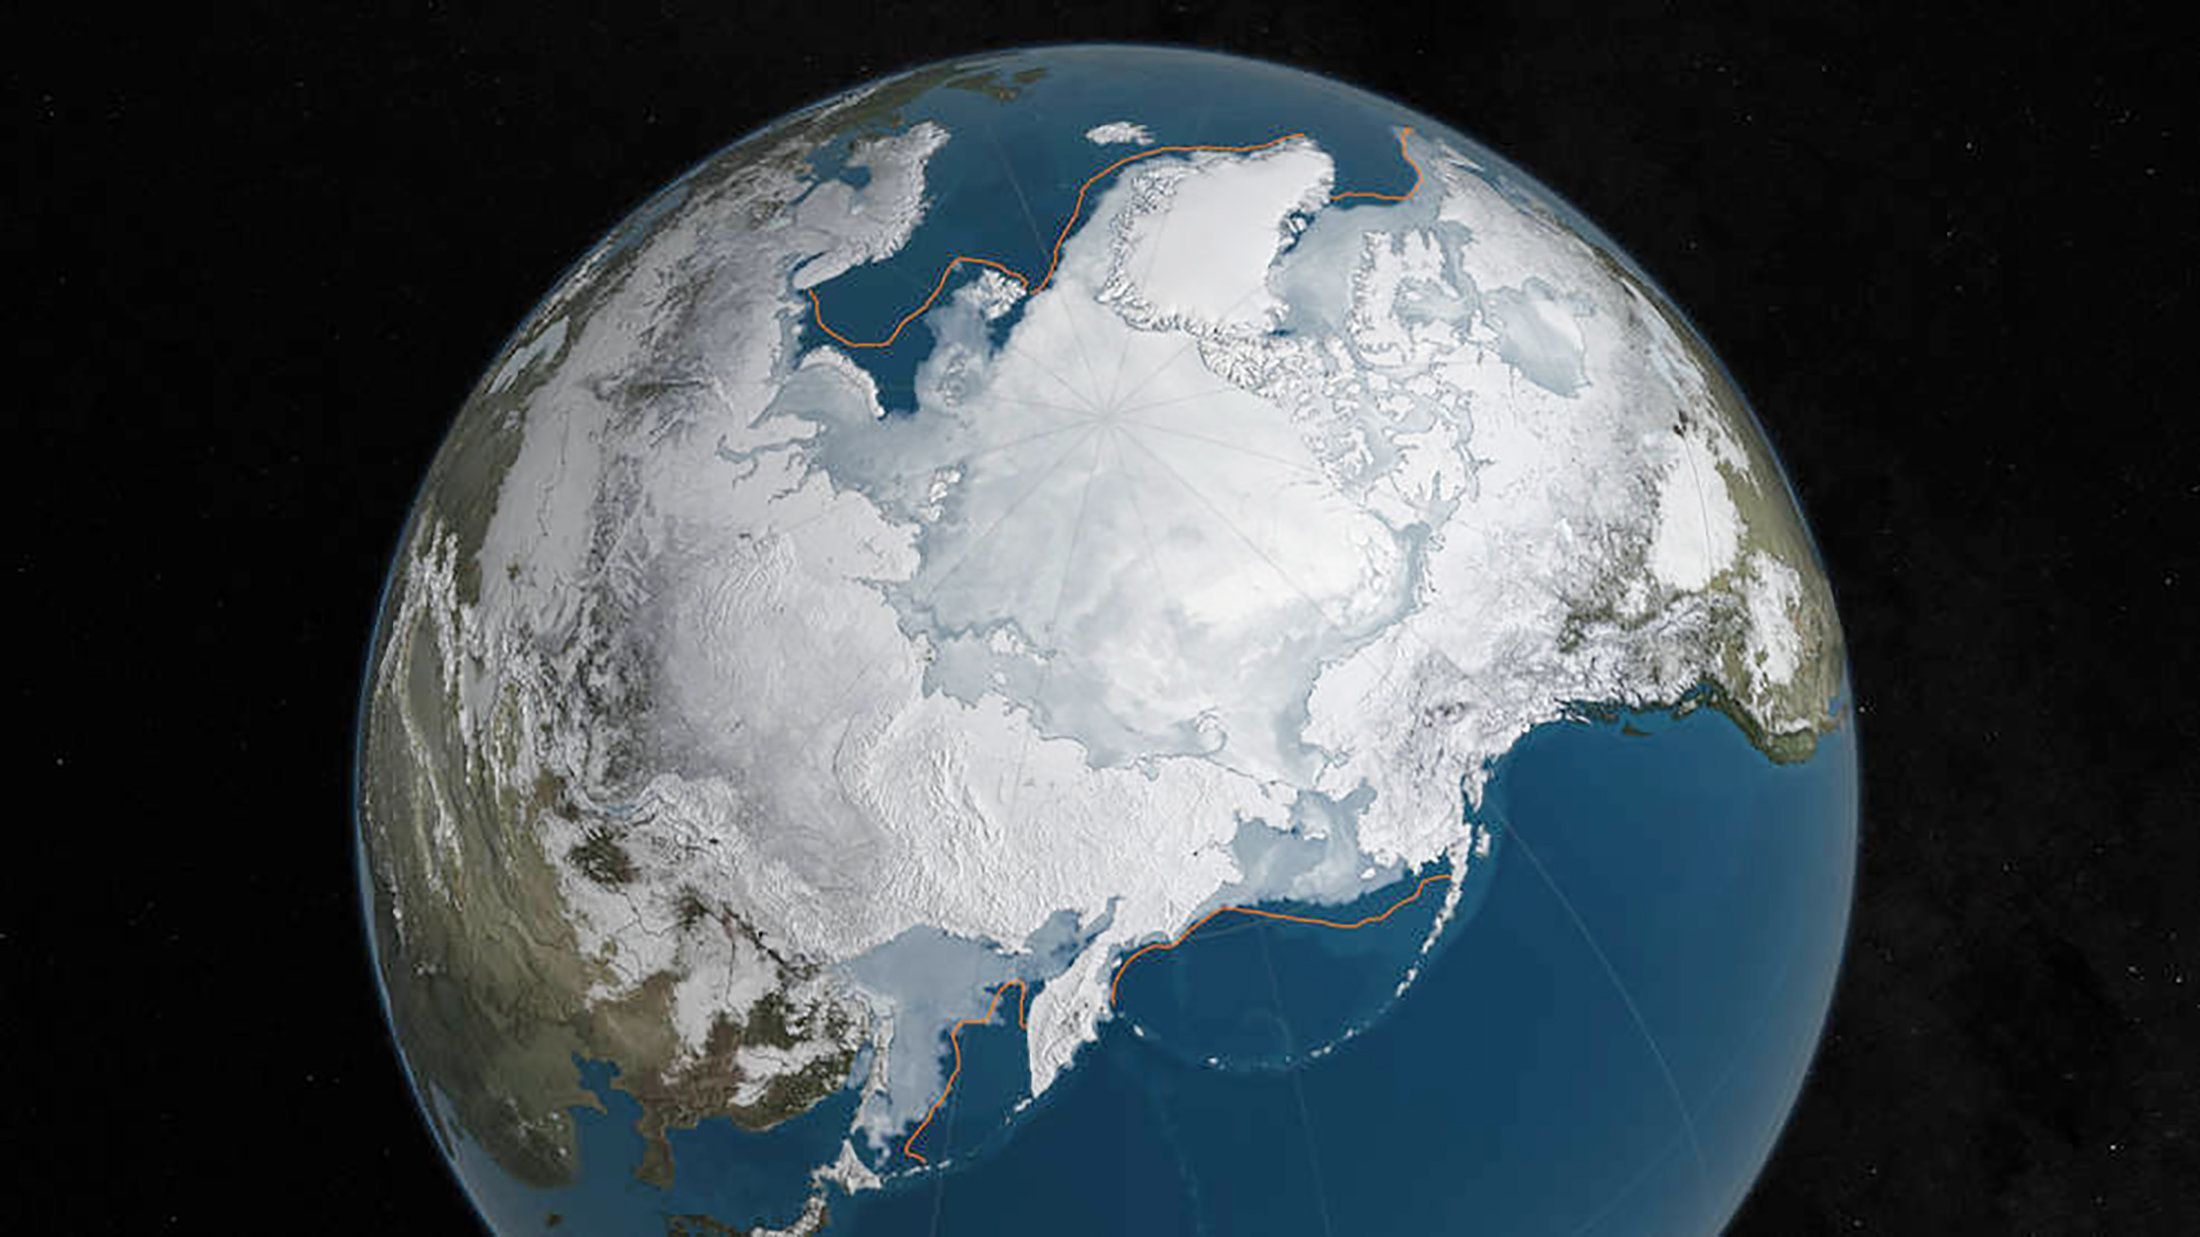 An undated NASA illustration shows Arctic sea ice at a record low wintertime maximum extent for the second straight year, according to scientists at the NASA-supported National Snow and Ice Data Center (NSIDC) and NASA.  At 5.607 million square miles (14.52 million square kilometers), the Arctic sea ice is the lowest maximum extent in the satellite record, and 431,000 square miles (1,116,284 square kilometers) below the 1981 to 2010 average maximum extent,  according to NASA.  REUTERS/NASA Goddard's Scientific Visualization Studio/C. Starr/Handout via Reuters  THIS IMAGE HAS BEEN SUPPLIED BY A THIRD PARTY. IT IS DISTRIBUTED, EXACTLY AS RECEIVED BY REUTERS, AS A SERVICE TO CLIENTS. FOR EDITORIAL USE ONLY. NOT FOR SALE FOR MARKETING OR ADVERTISING CAMPAIGNS